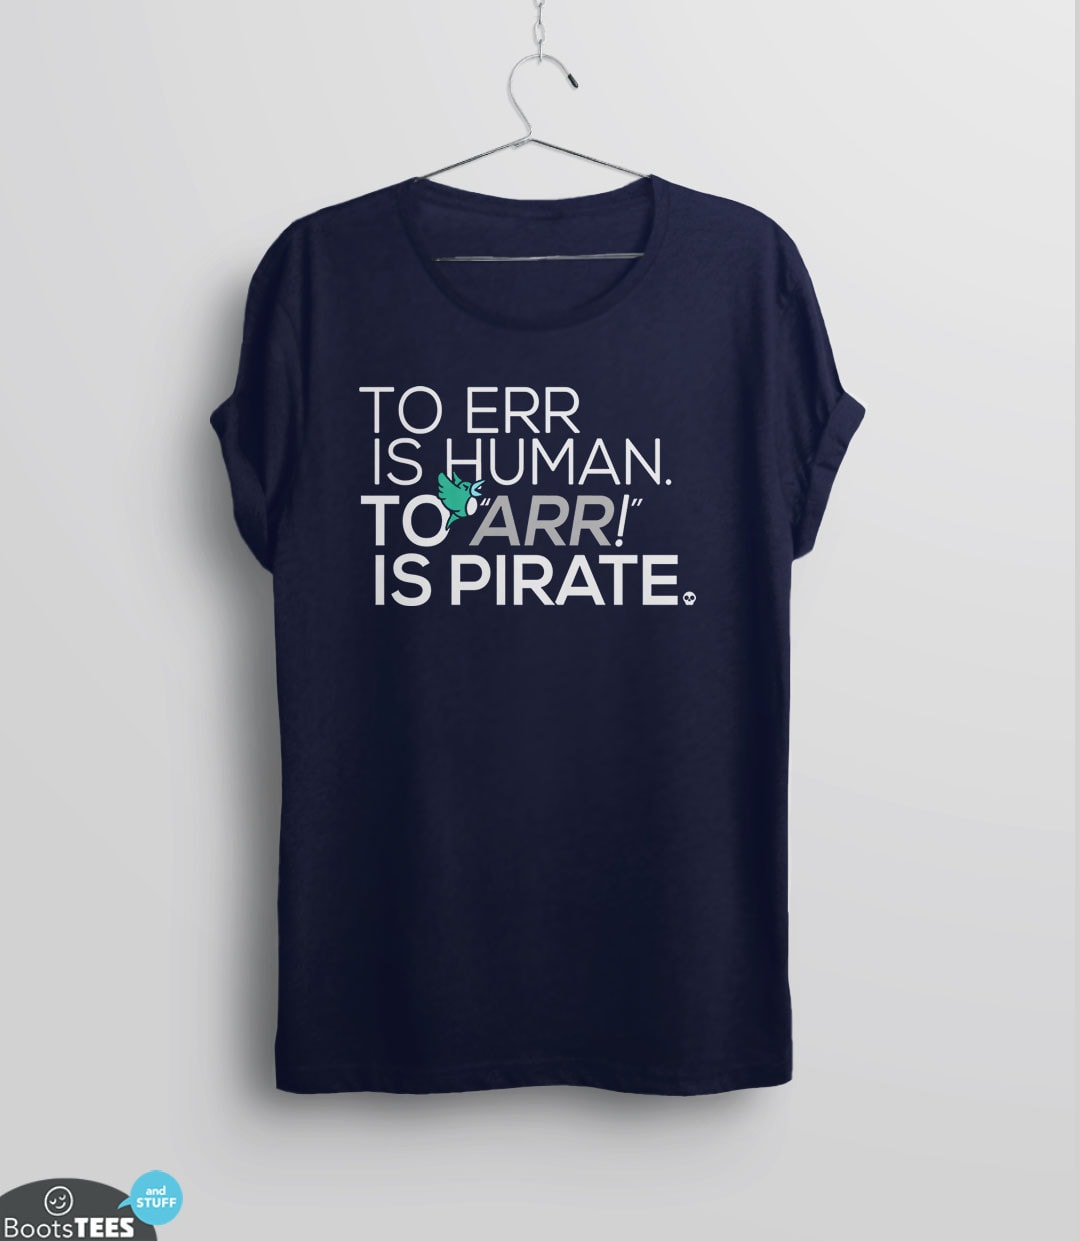 To Err is Human to ARR is Pirate, Navy Mens (Unisex) Tee by BootsTees